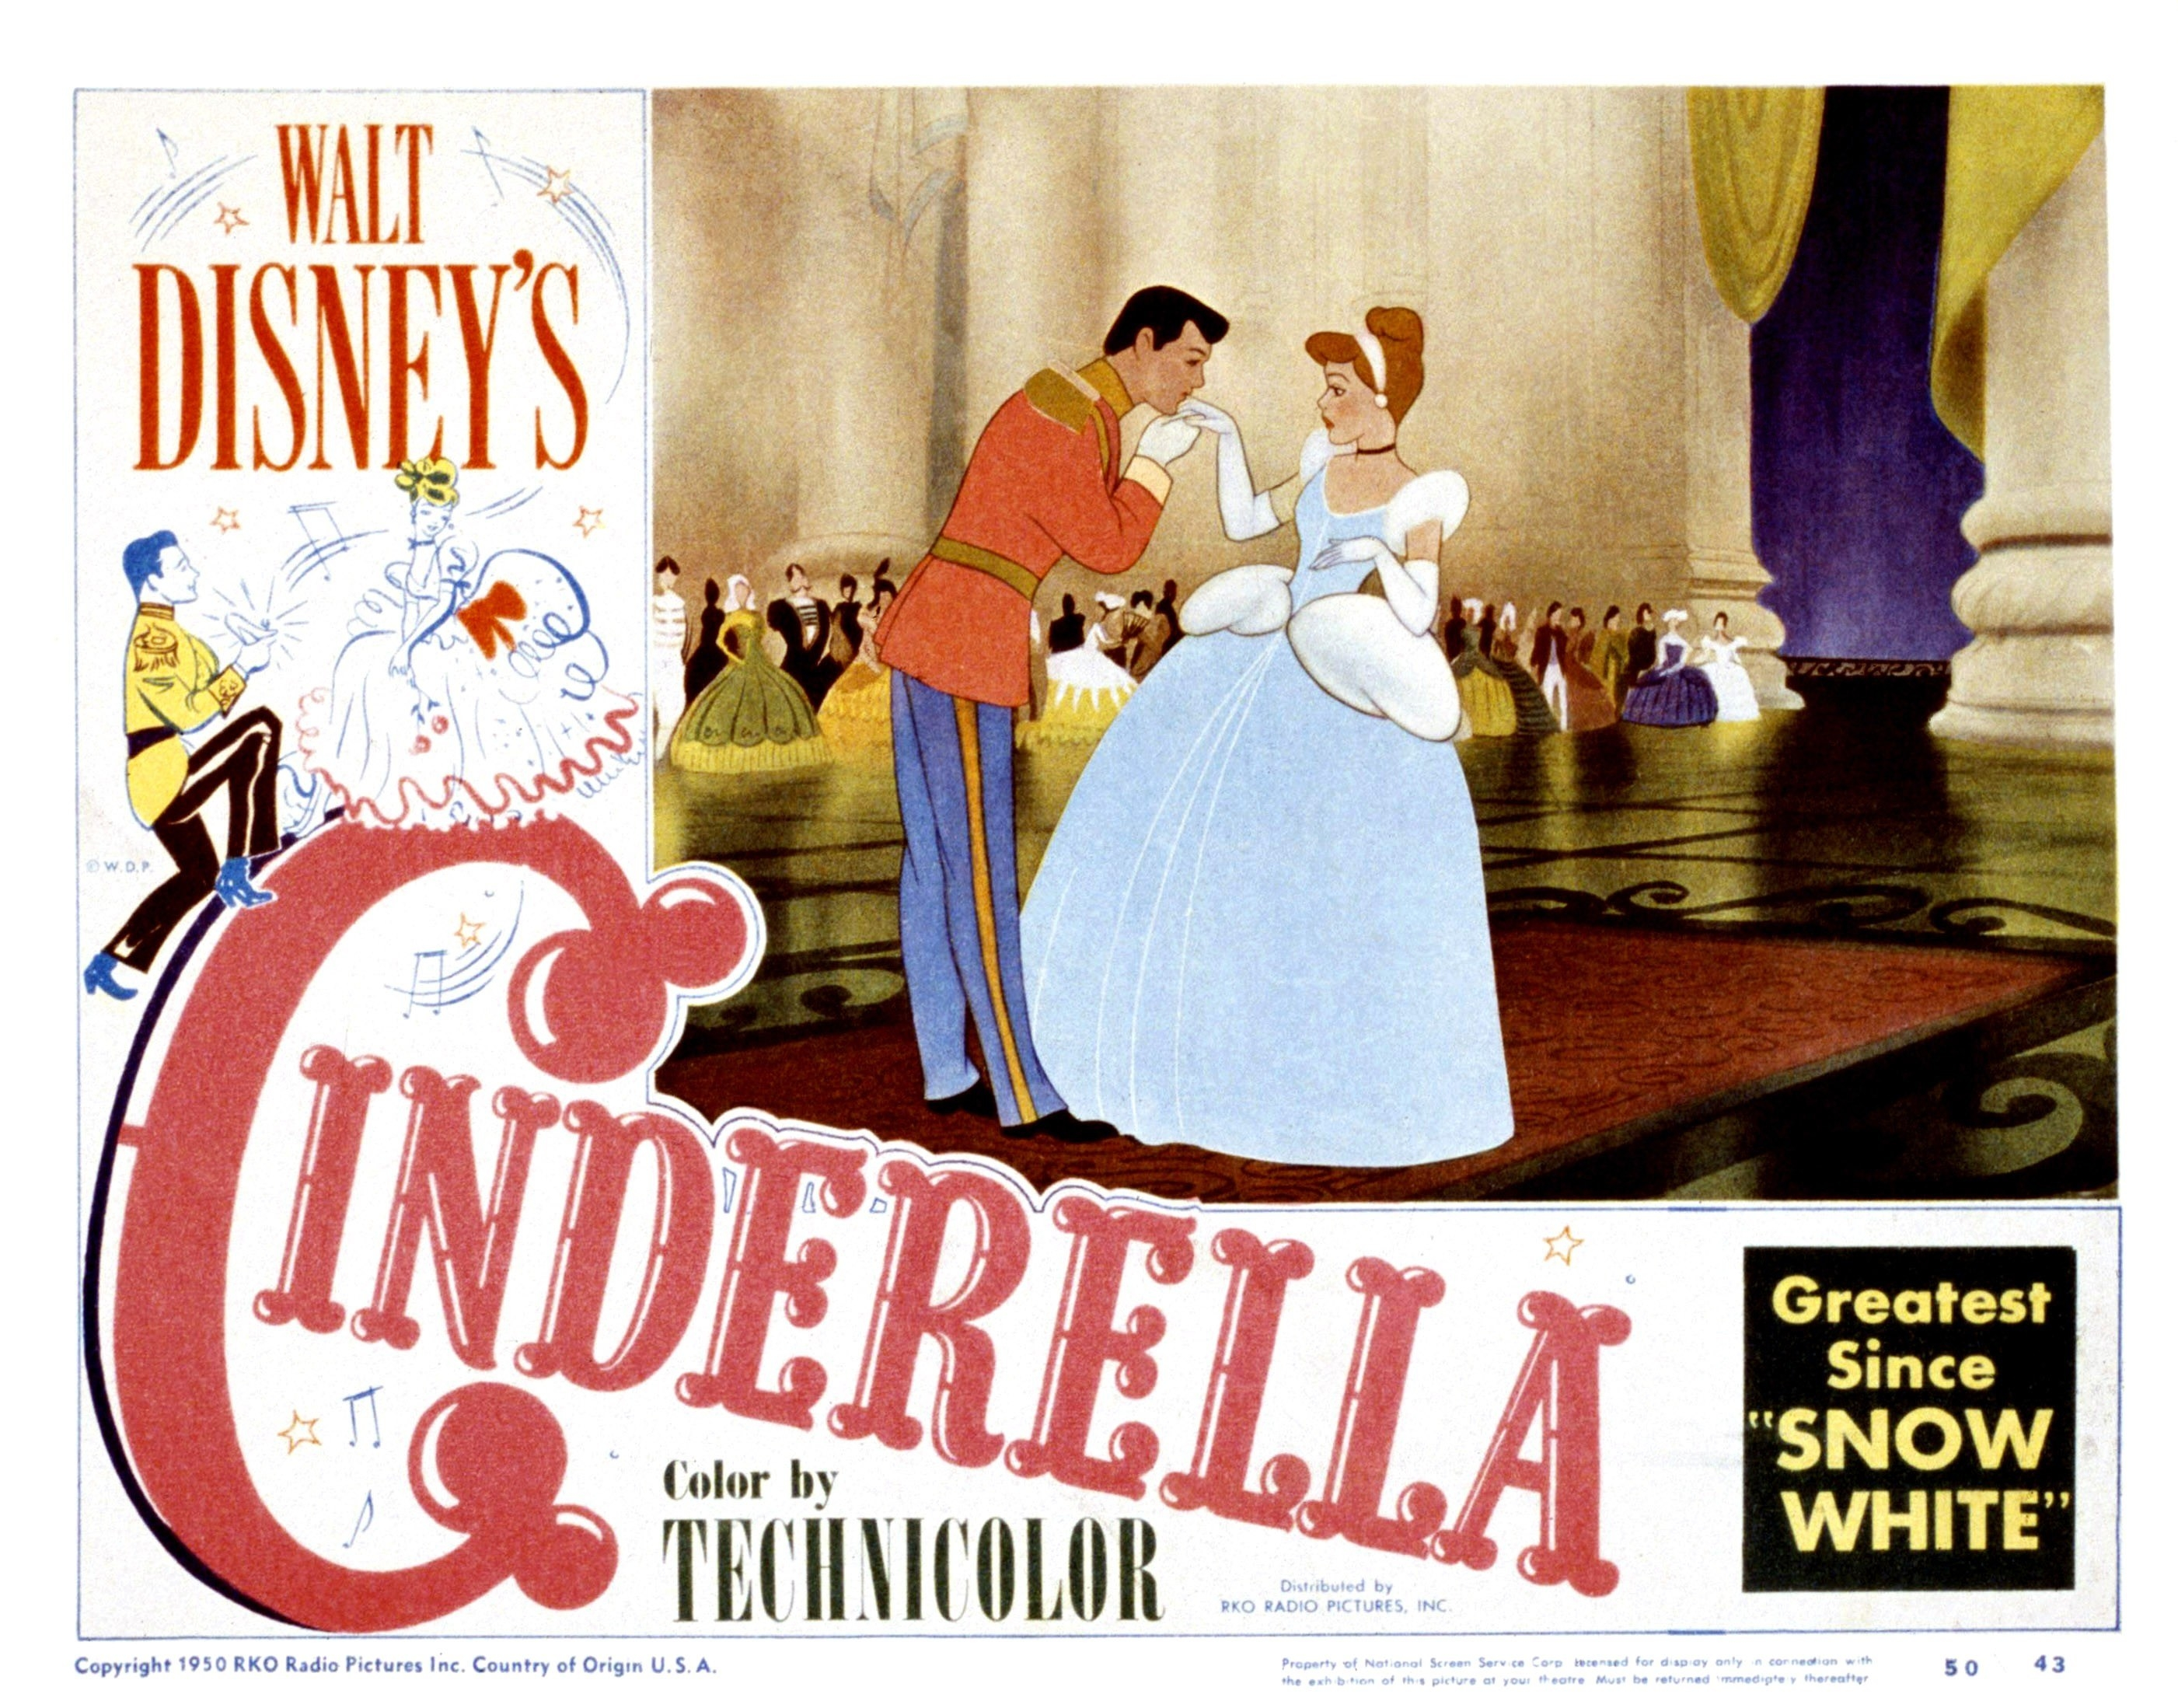 A 1950 lobby card for Cinderella with the greatest since Snow White written on it